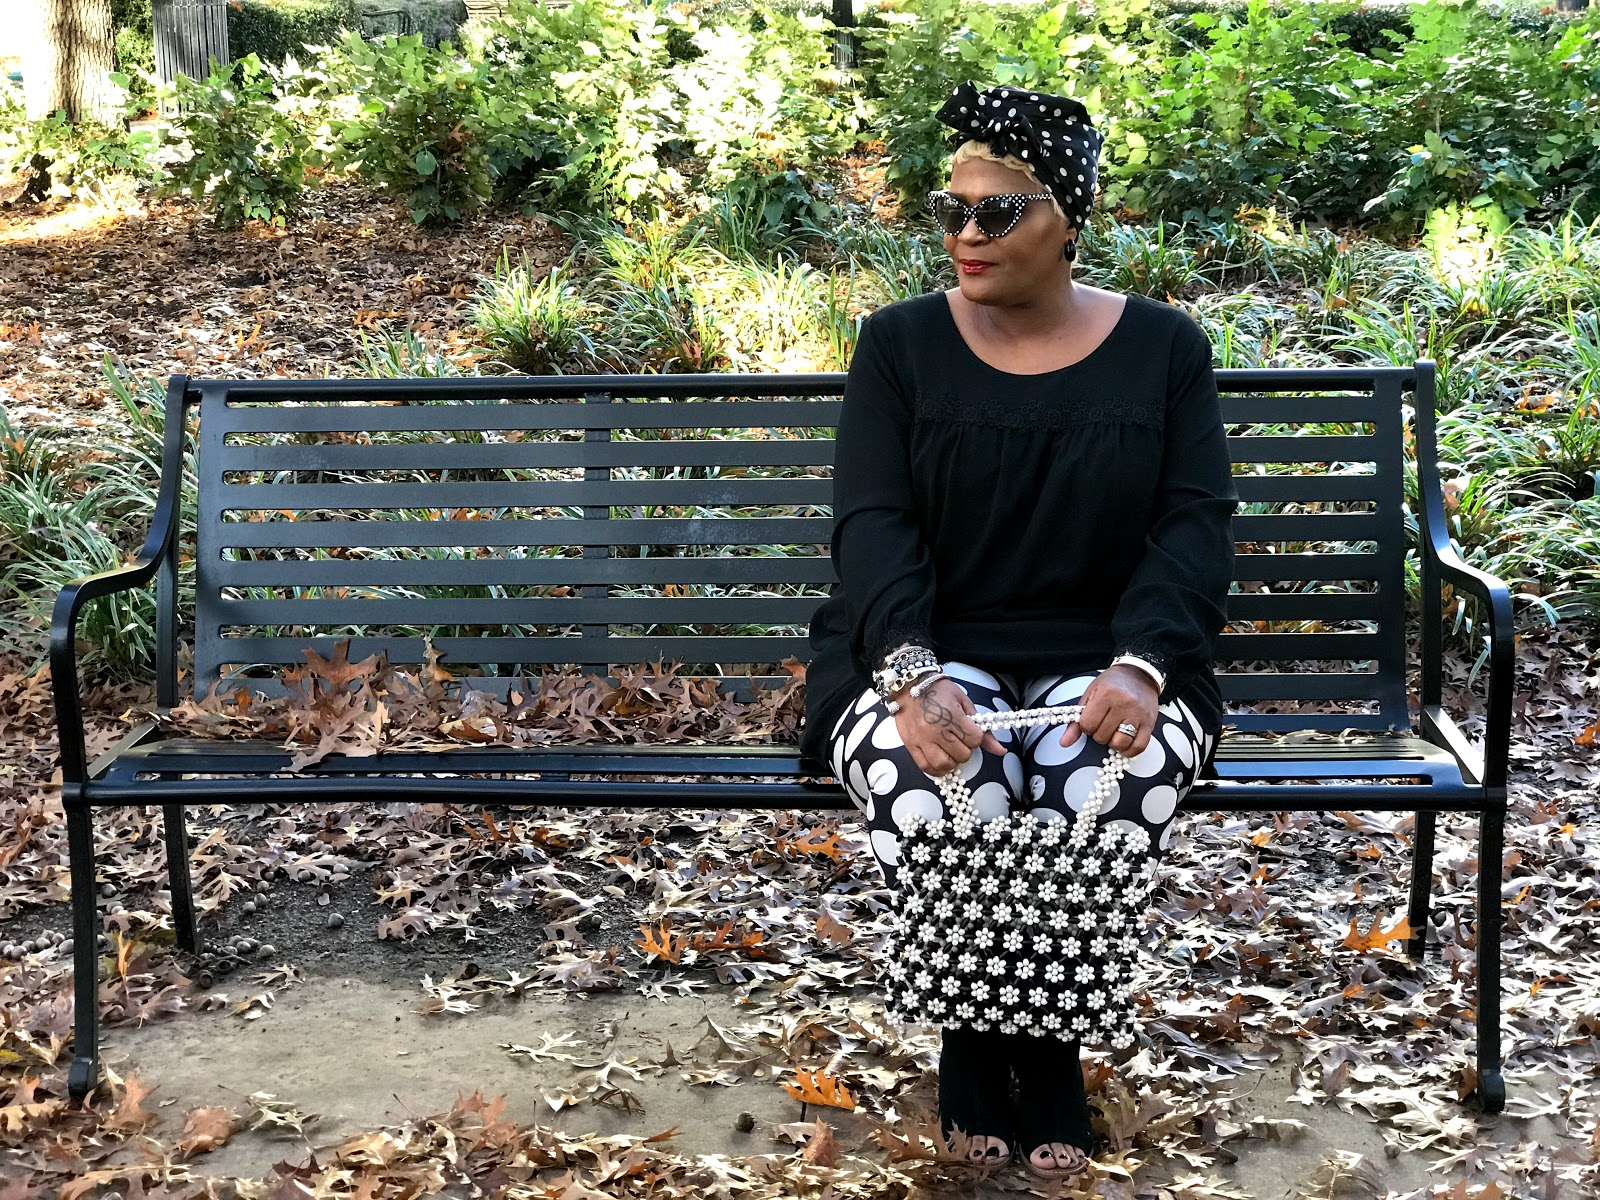 Sitting on a bench sharing outfit ideas, shoes, polka dot leggings, handbag, polka dot shades